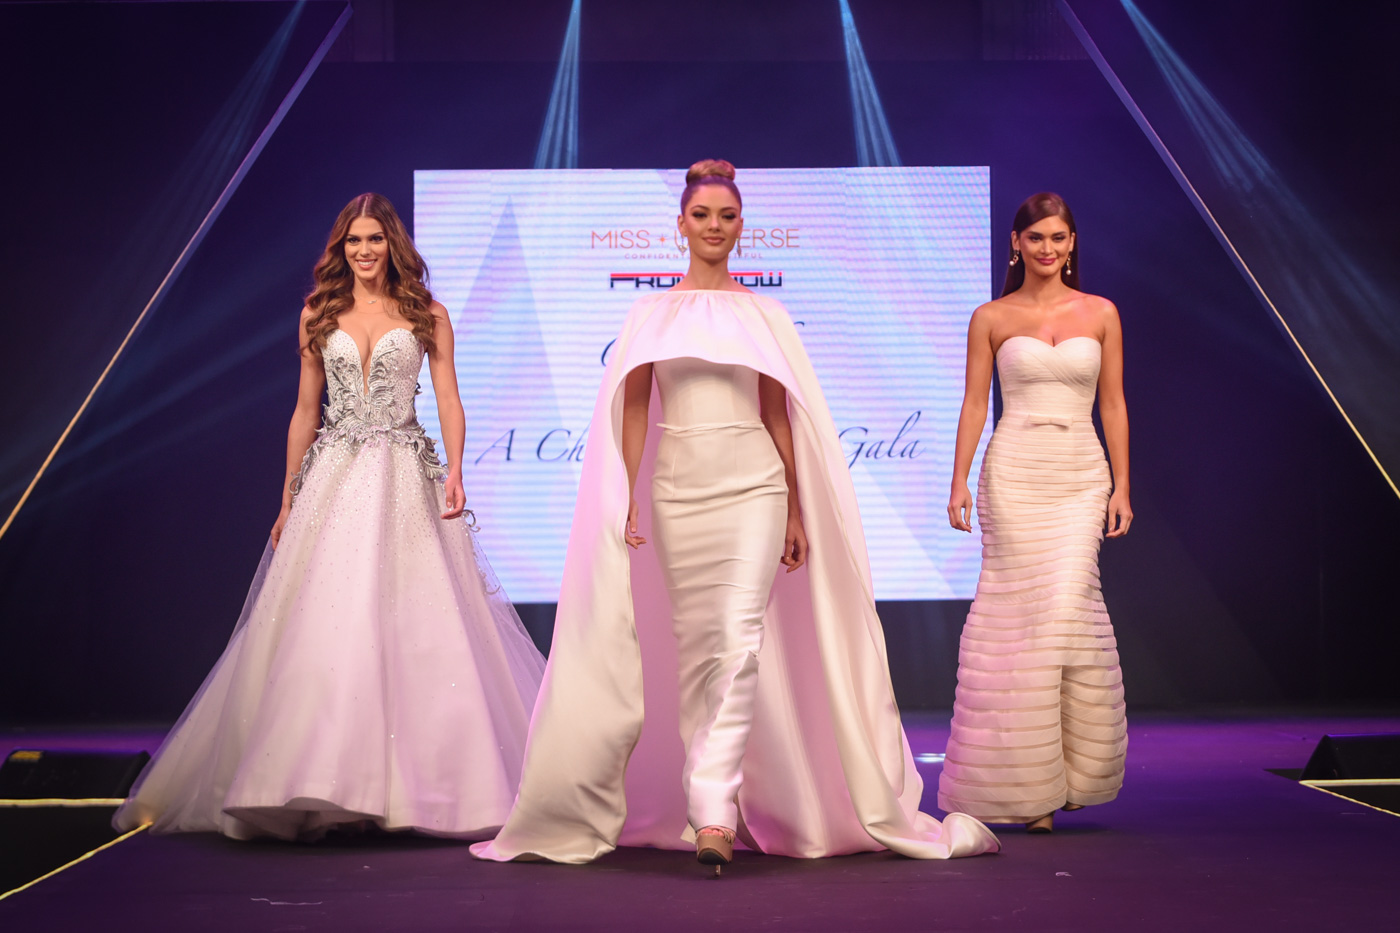 Iris, Demi-Leigh, and Pia walk together onstage